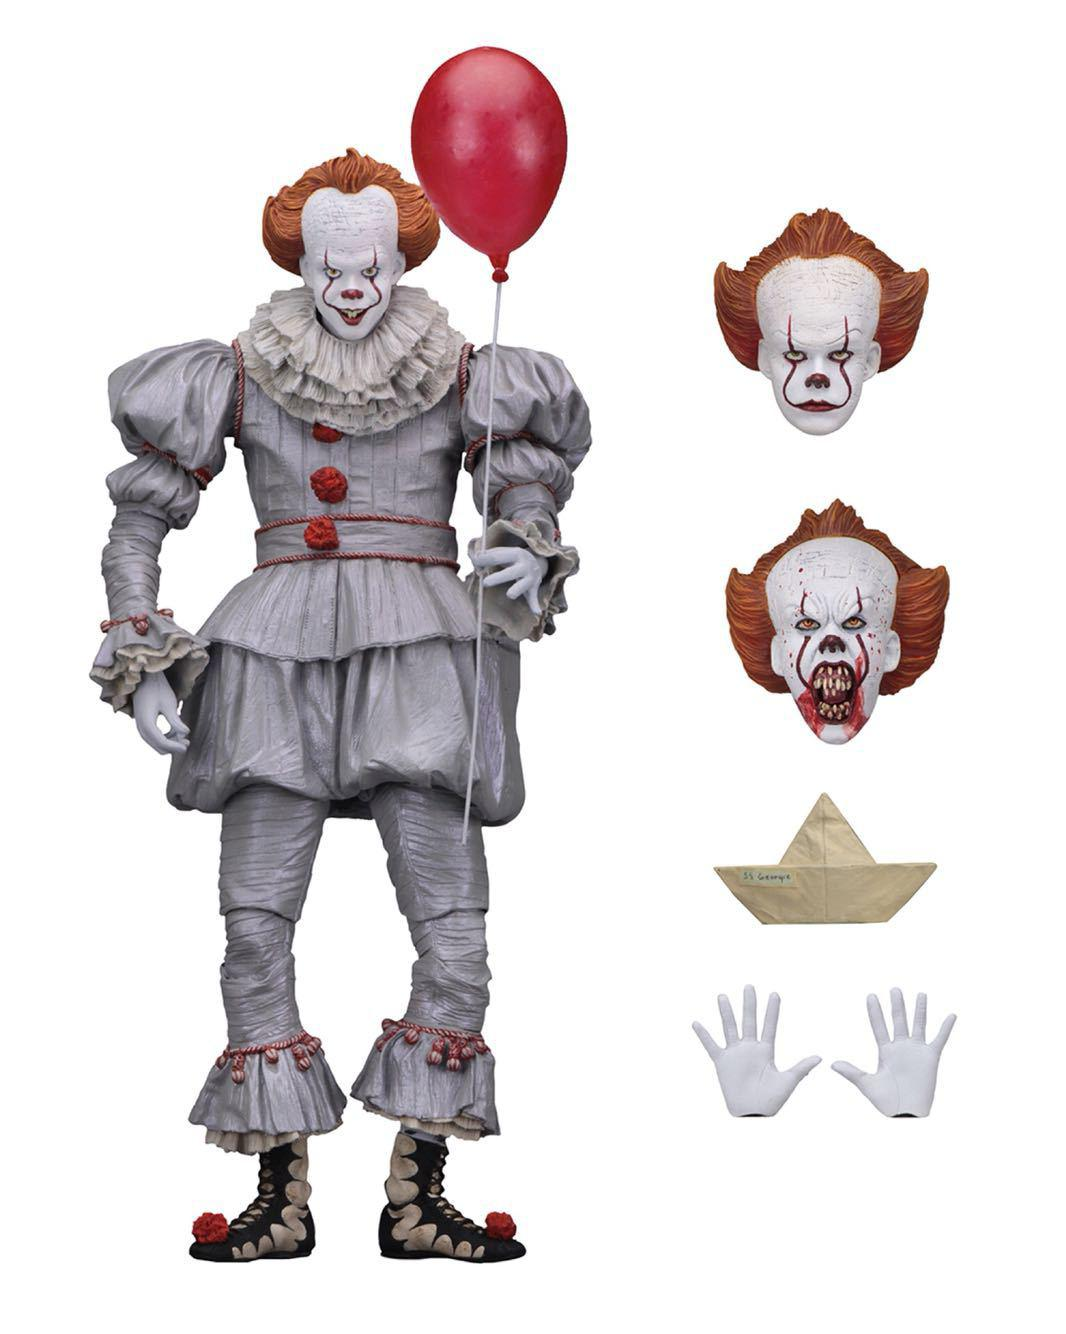 цены на Neca Original Stephen King's It Pennywise Joker clown BJD Action Figure Toys Dolls 18cm в интернет-магазинах